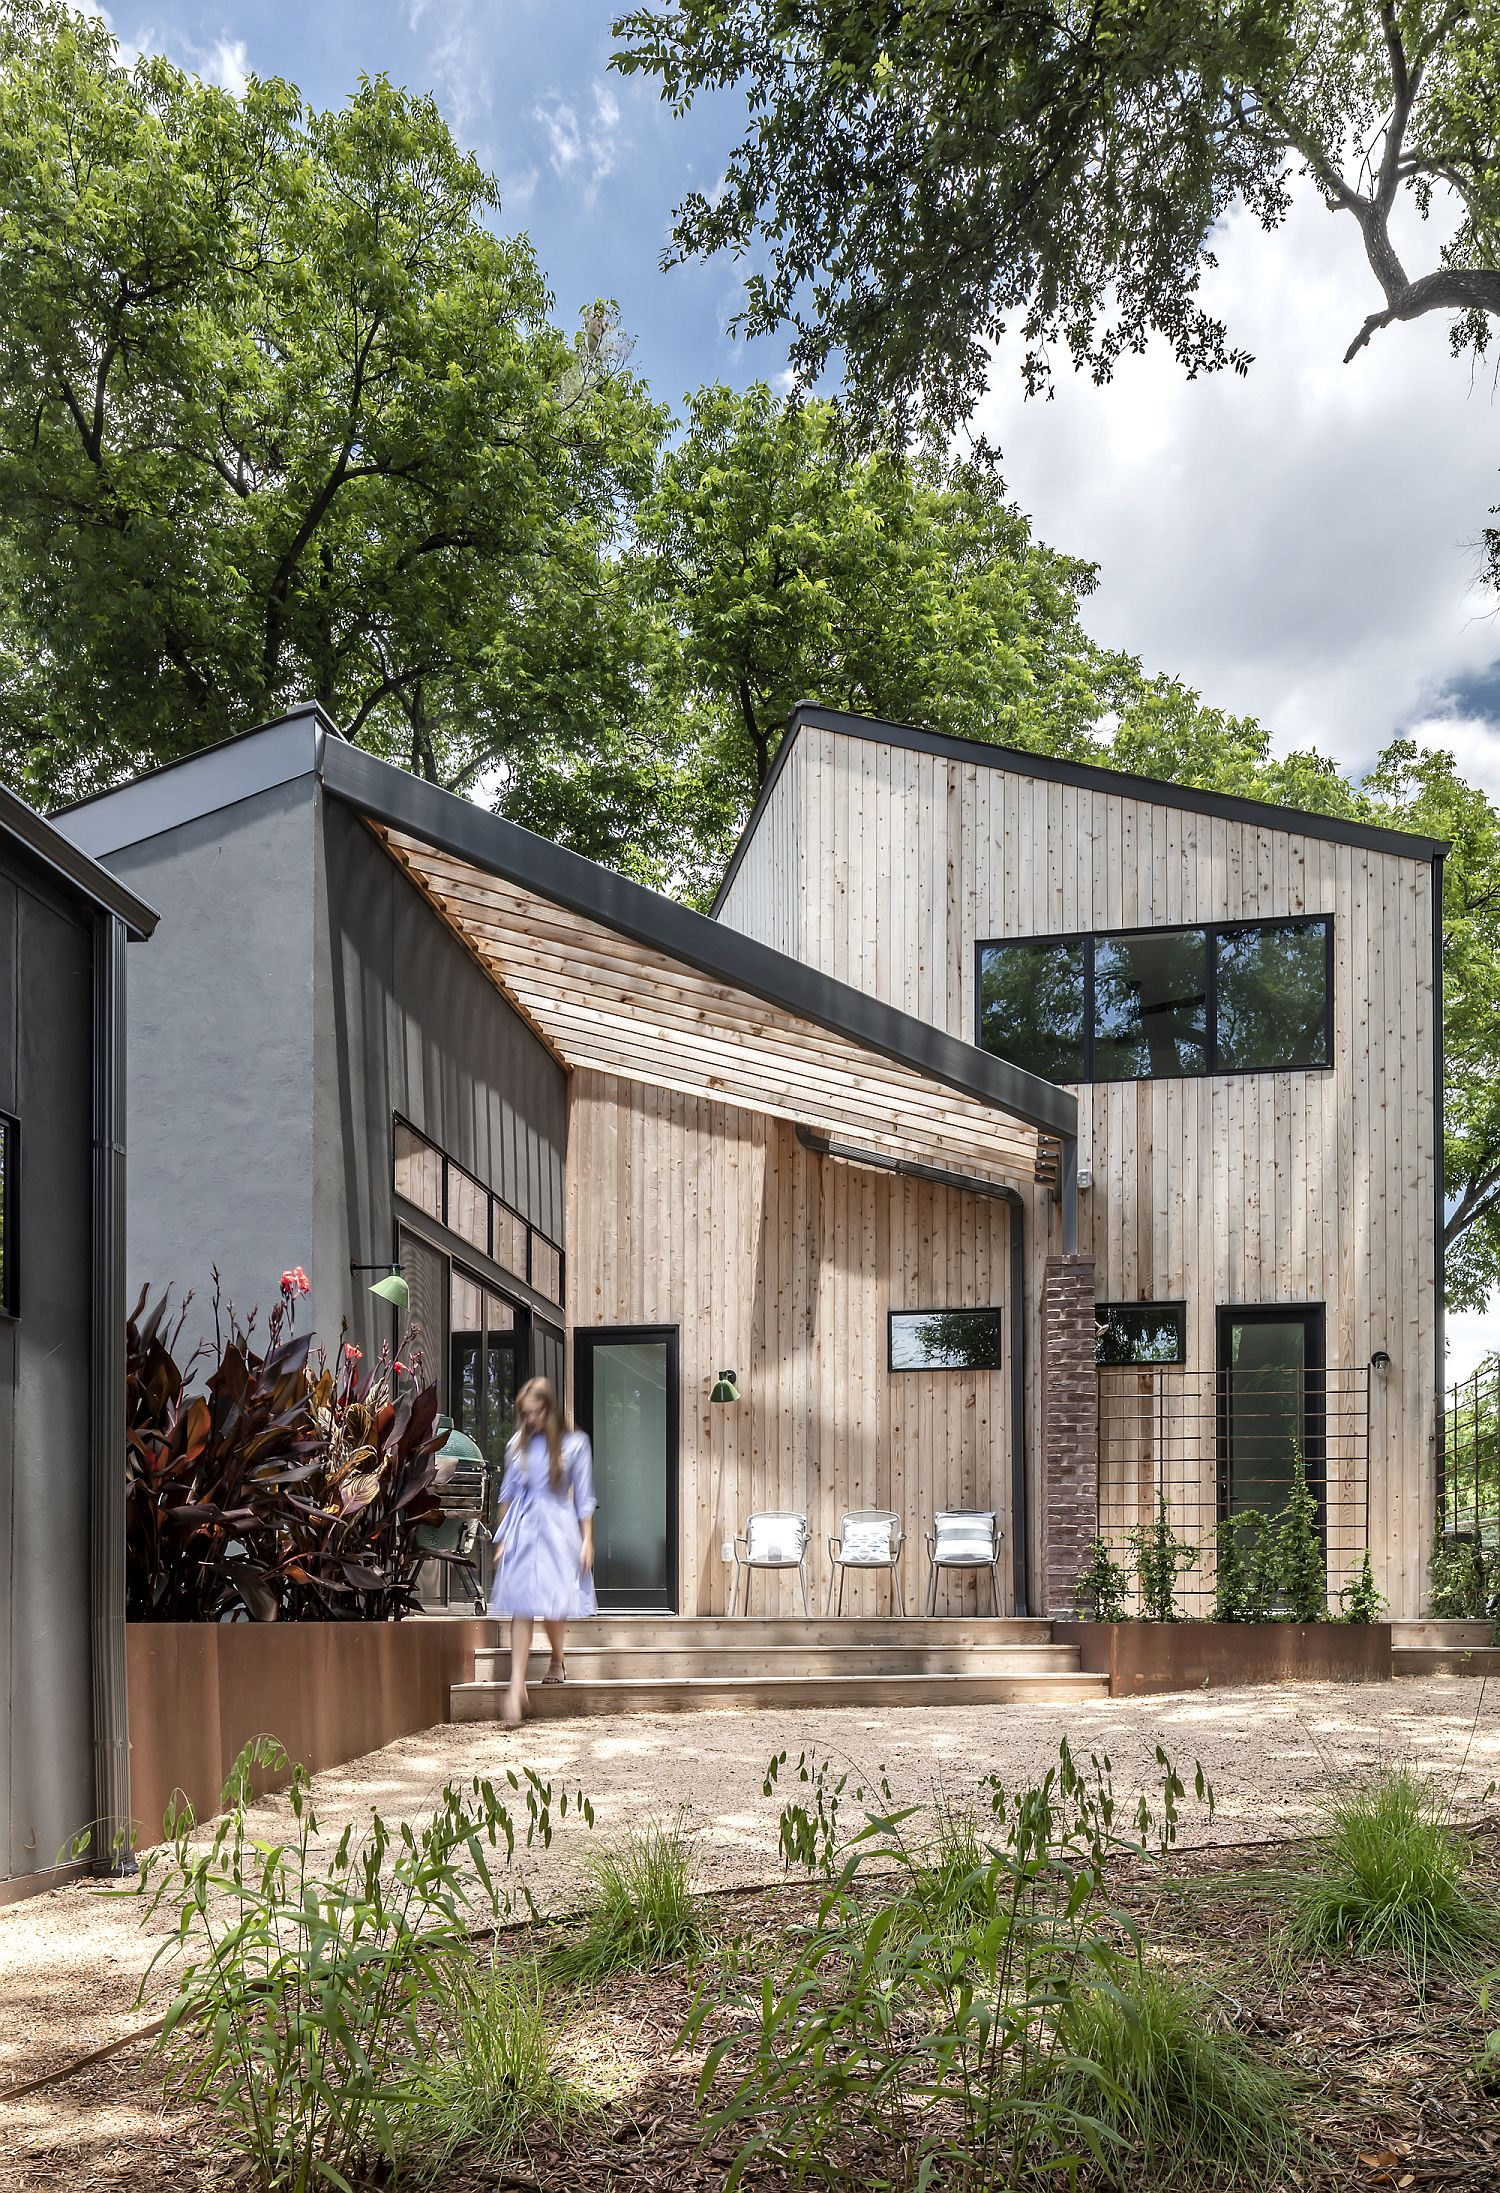 Vaulted-ceilings-and-wooden-exterior-of-the-Hewn-House-in-Austin